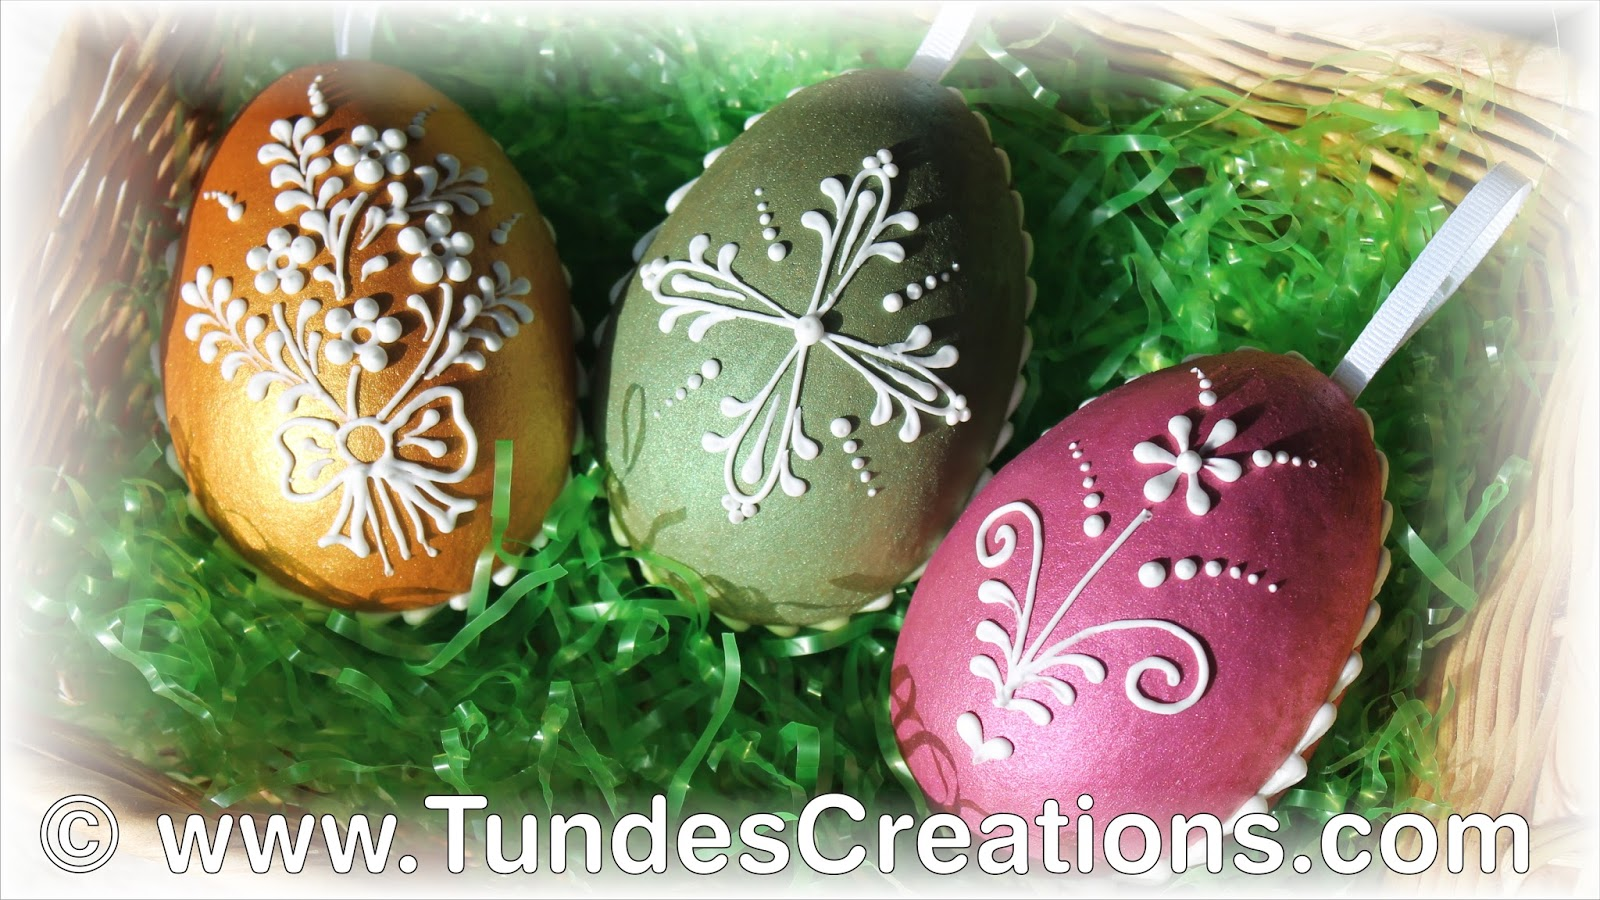 The Gingerbread Artist Candy Filled Easter Egg Cookies